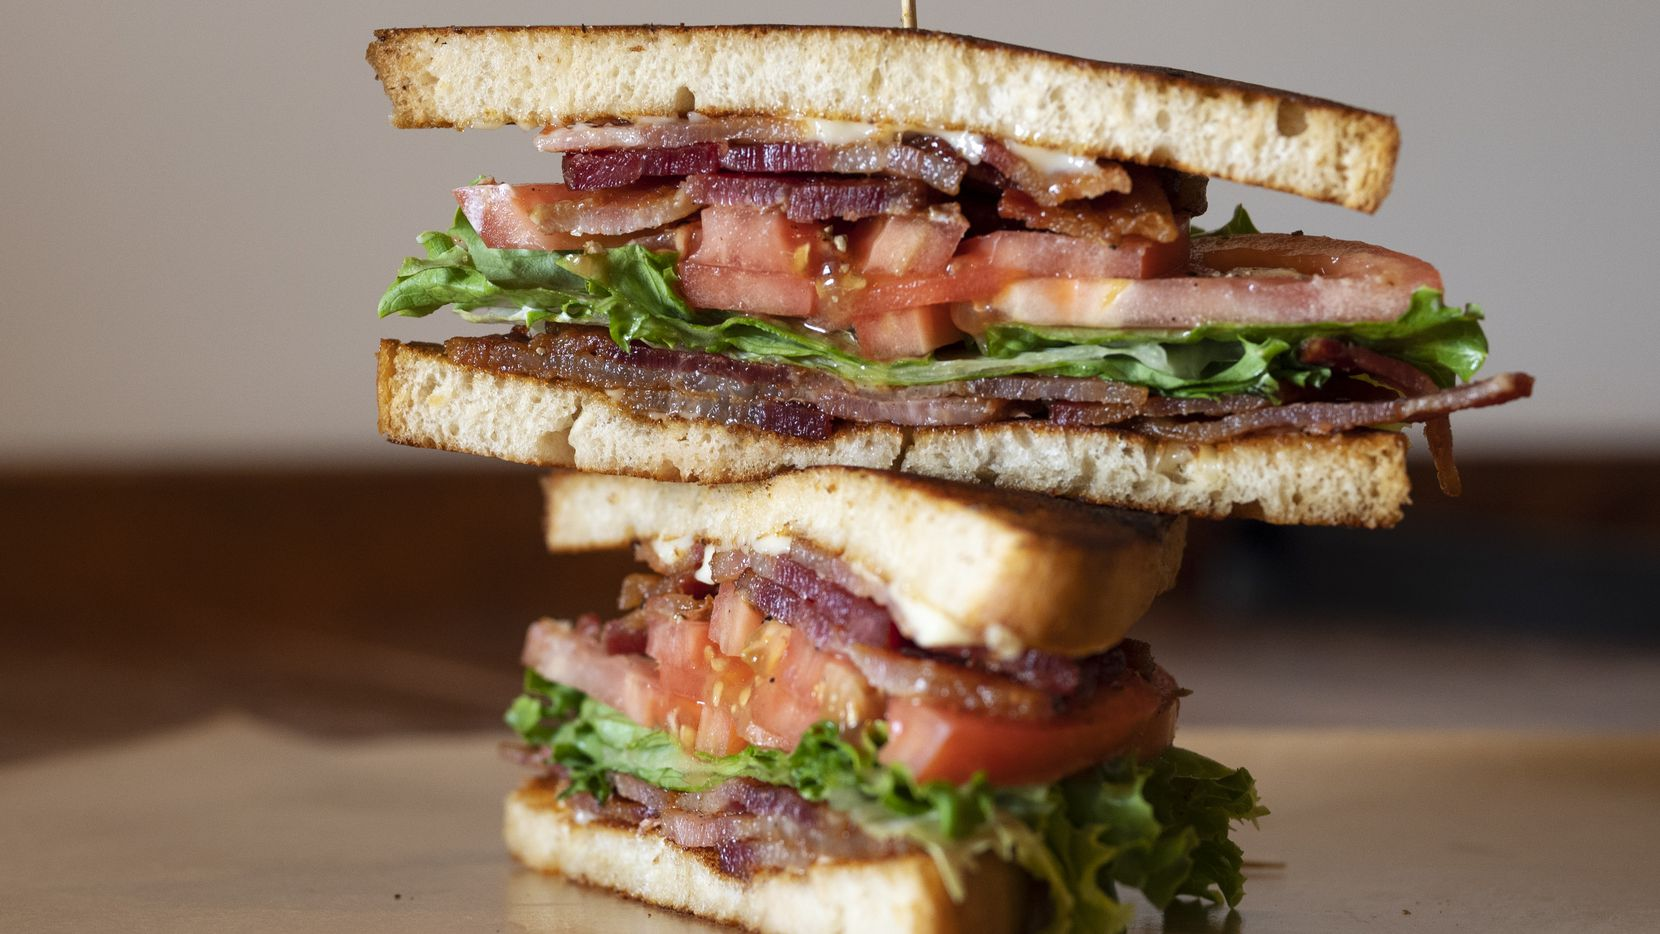 The classic BLT, bacon, lettuce, tomato, with mayo on griddled white bread, from at Goodfriend Package restaurant in Dallas, on June 29, 2021.